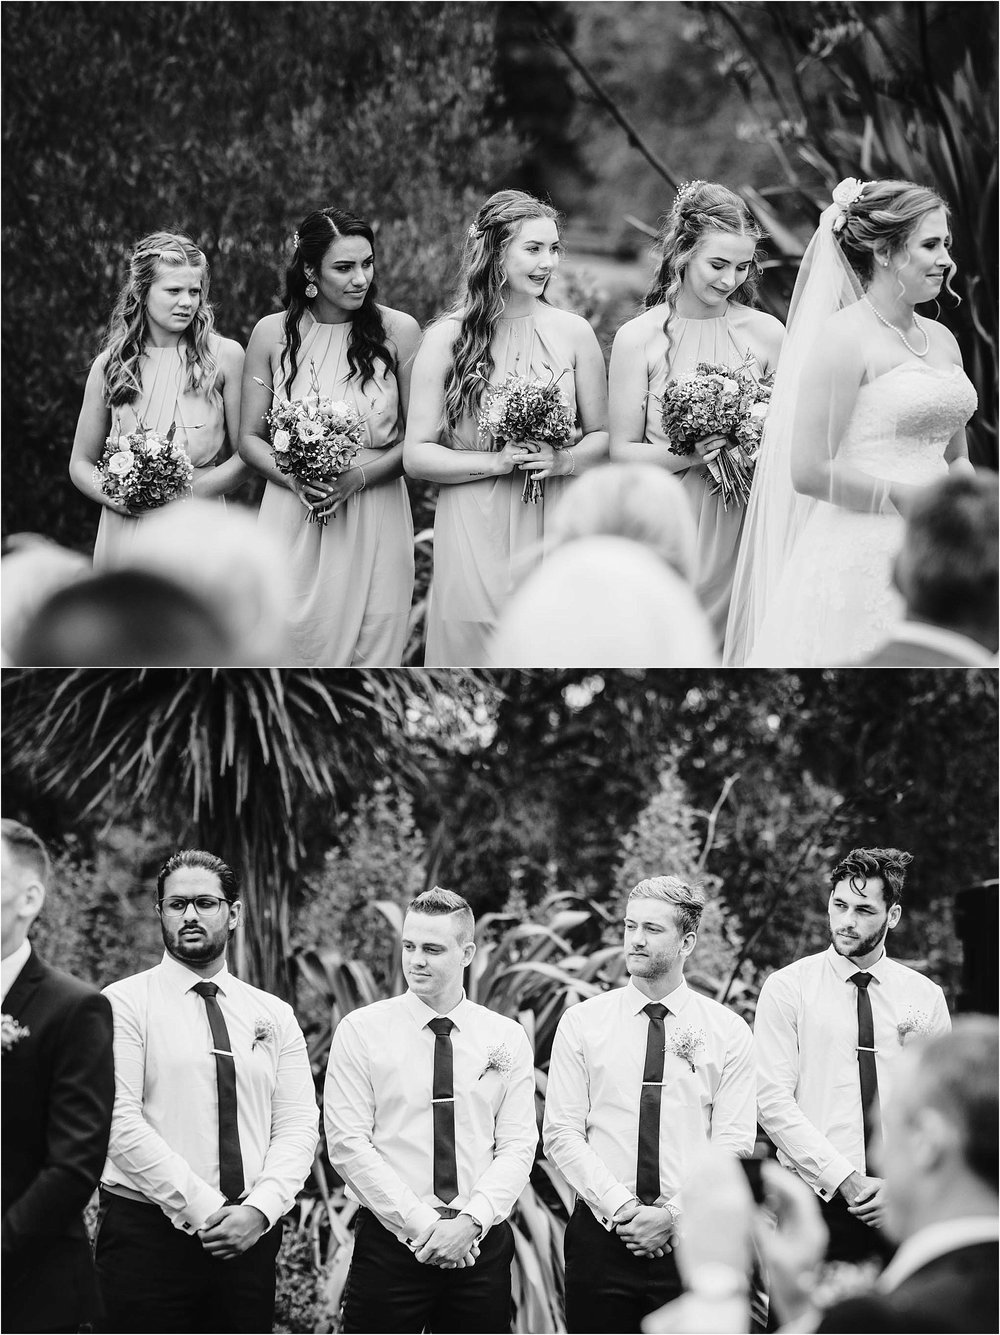 Auckland-Wedding-Photographer-Briana-Dave-Hunting-Lodge-Winery-Married_0040.jpg